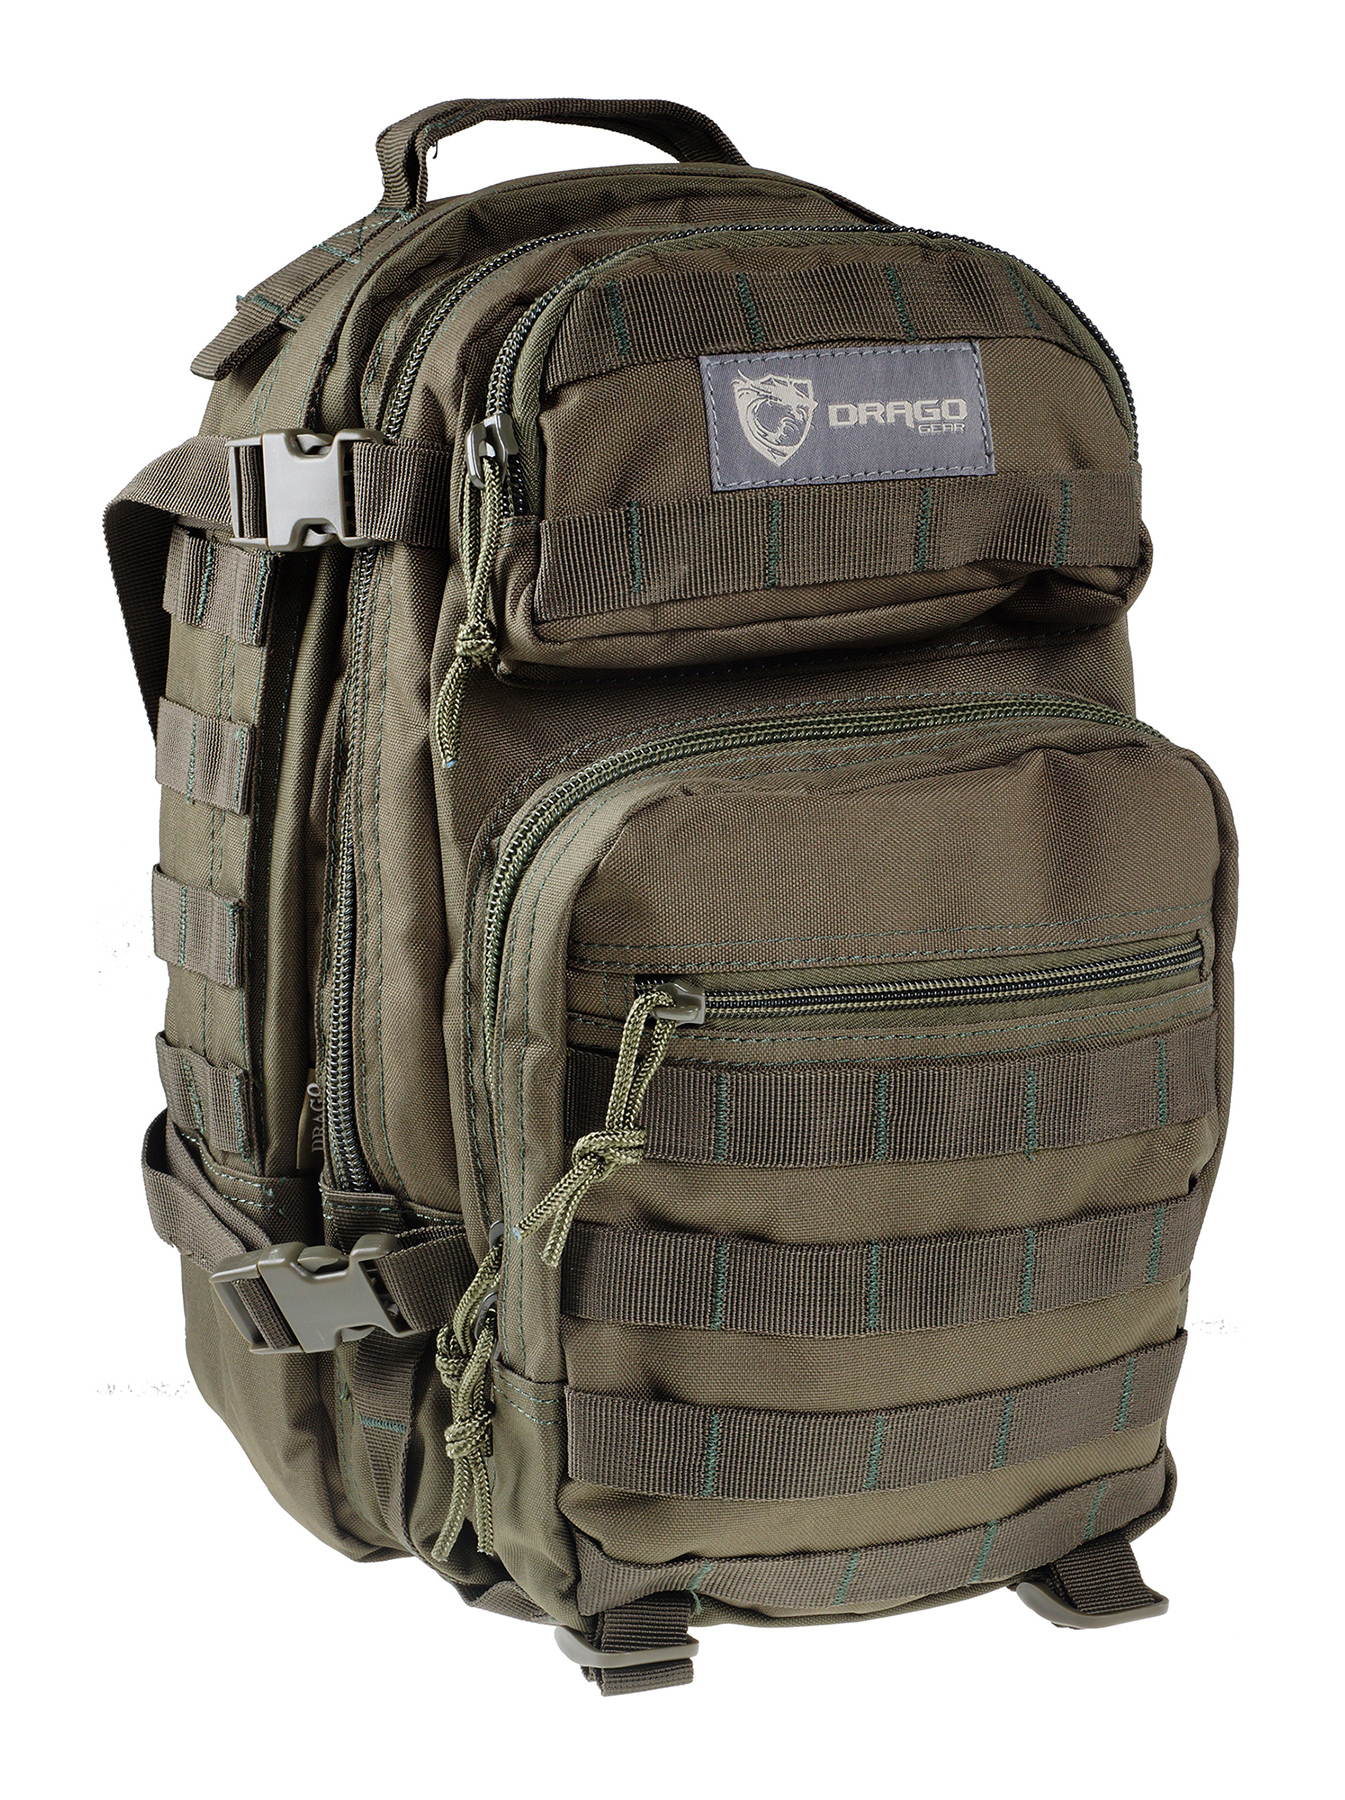 Scout Backpack Drago Gear